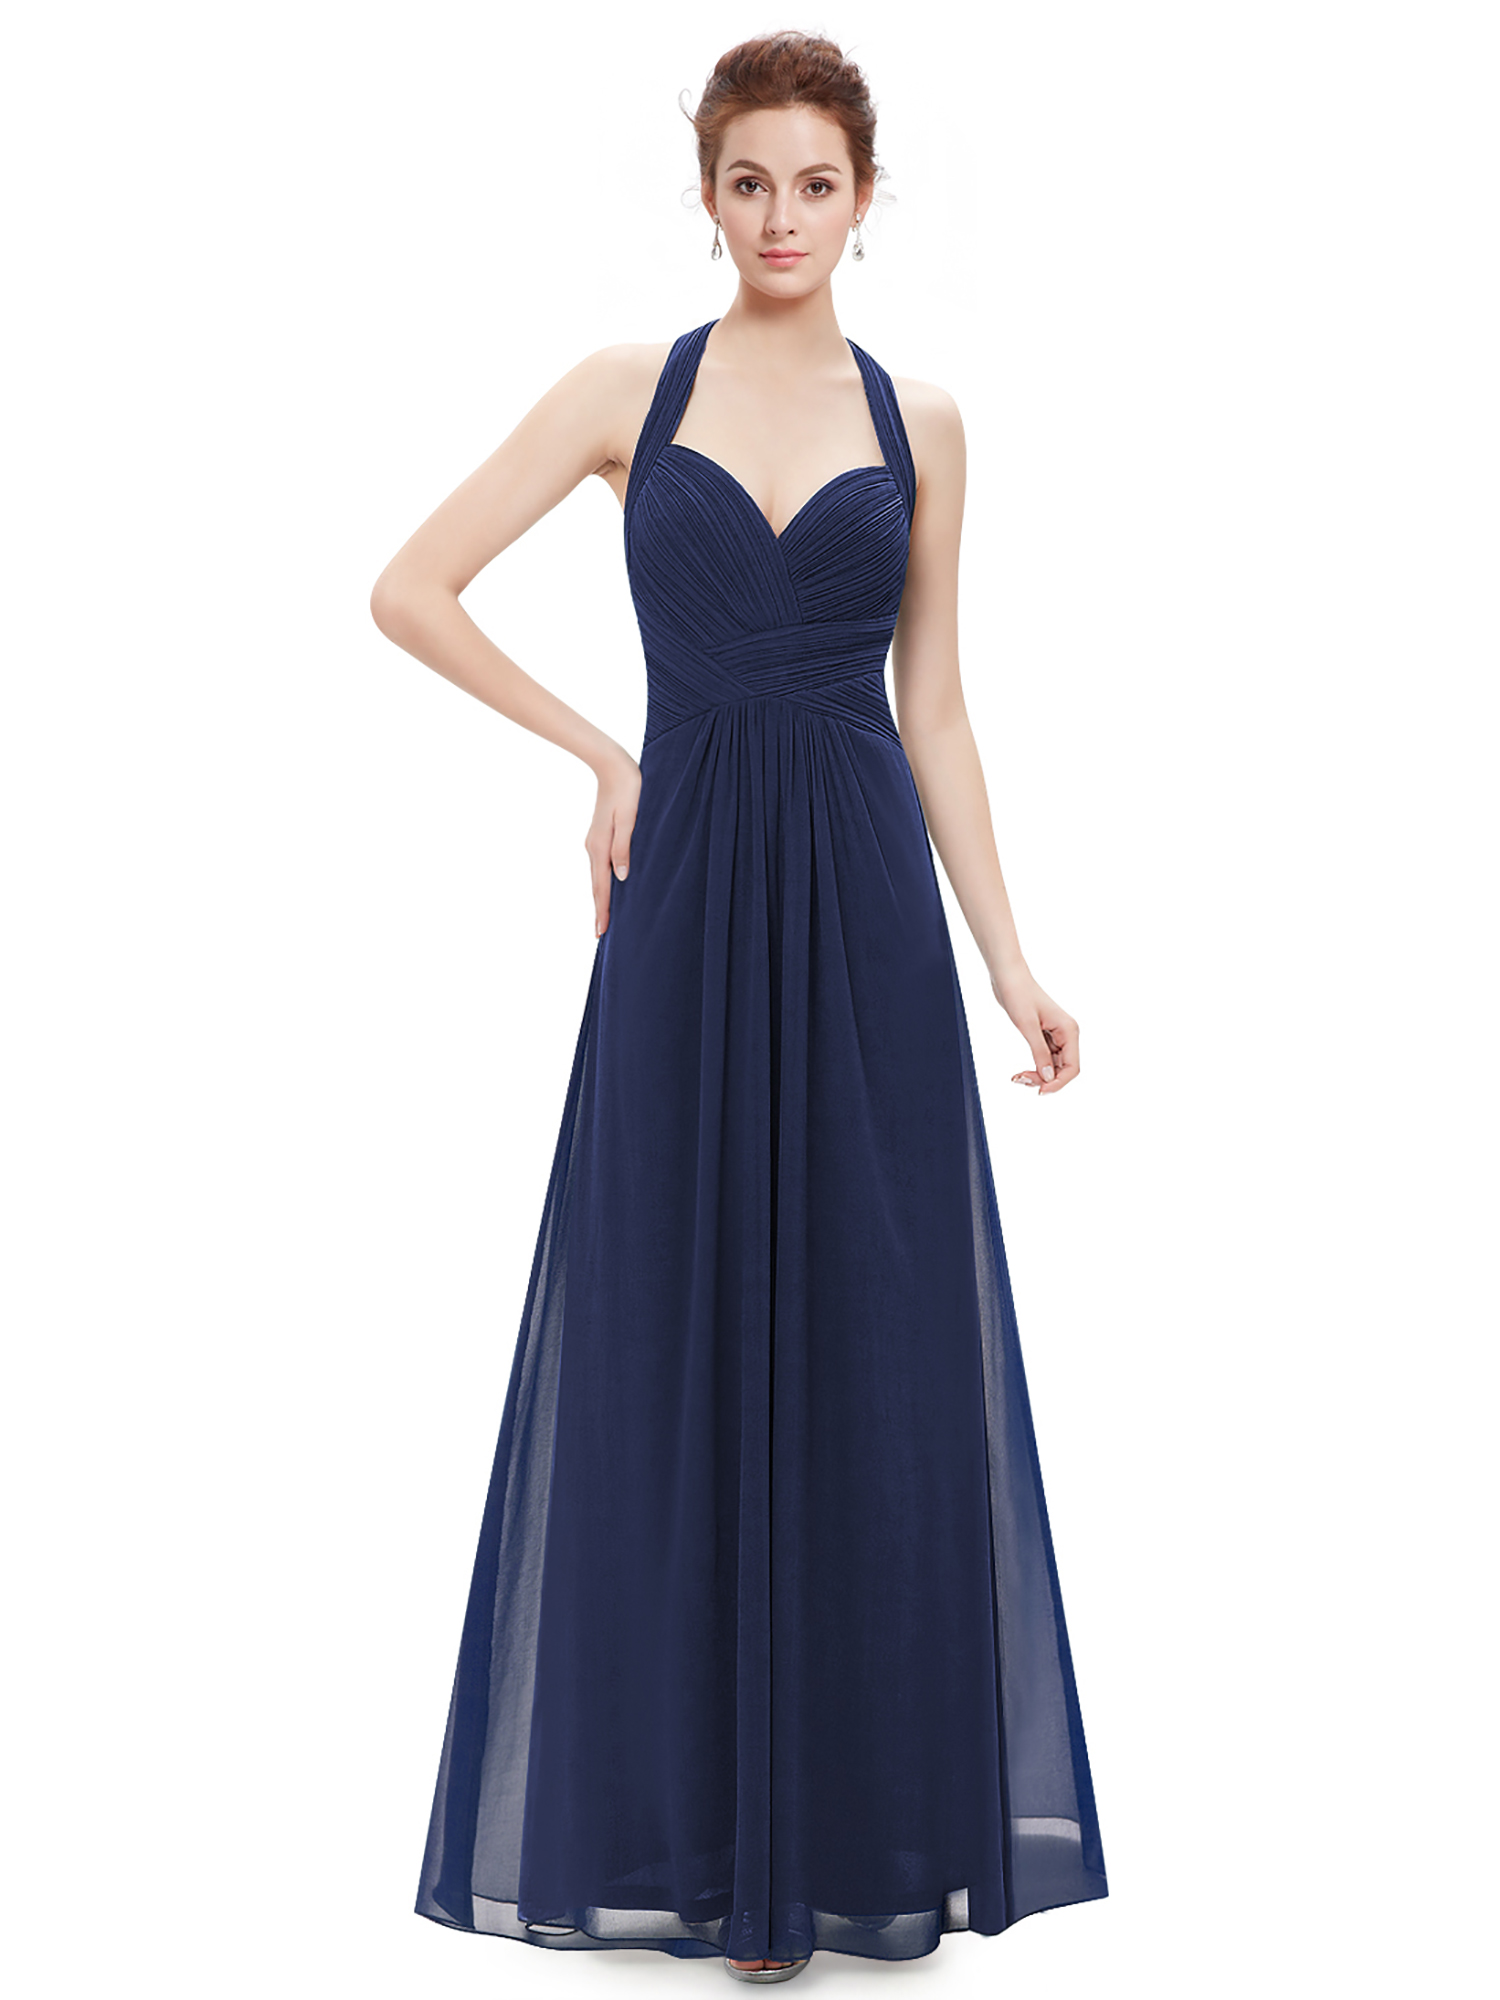 Women 39 s maxi halter bridesmaid dress evening wedding prom for Formal long dresses for weddings